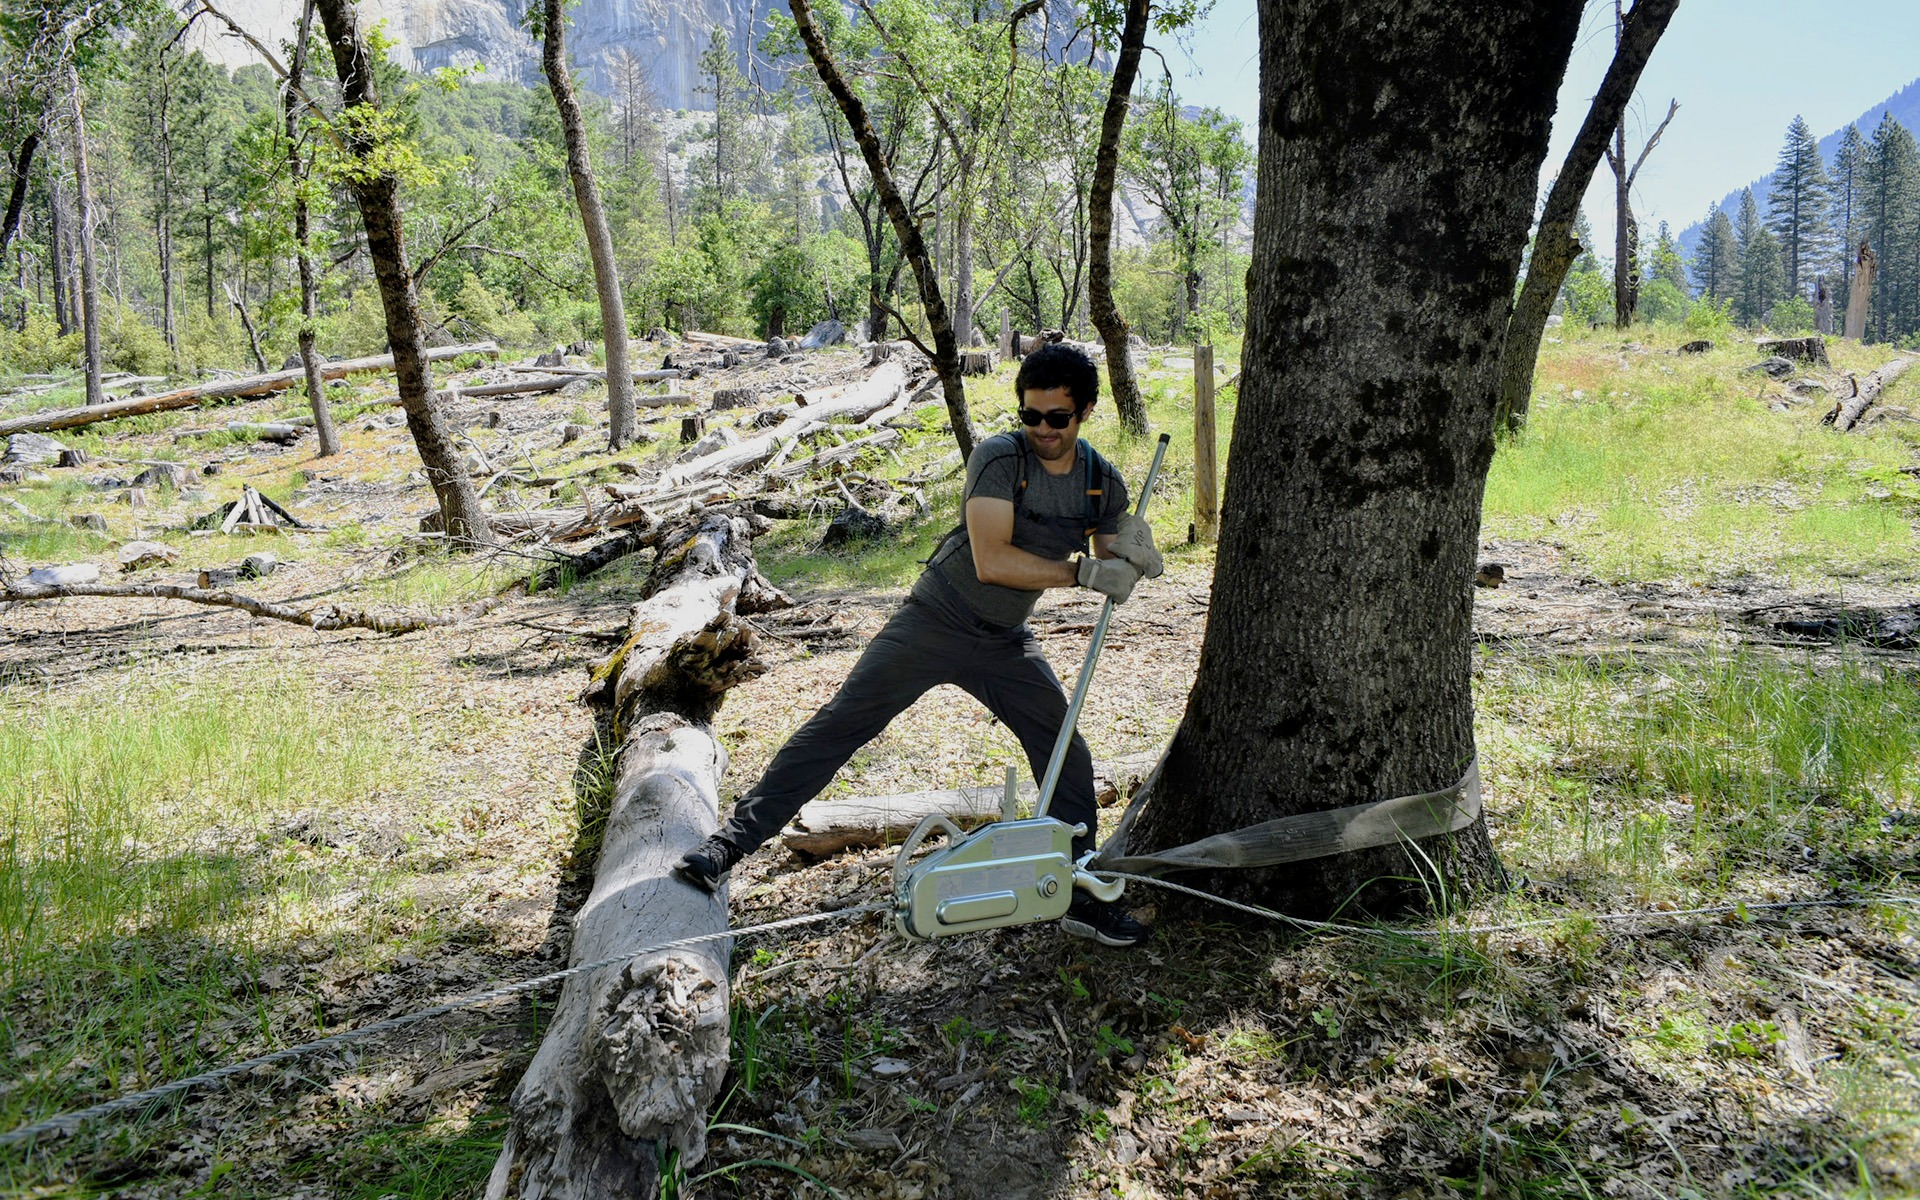 A 2019 work week volunteer uses a Griphoist to move heavy materials as part of a project to create a safe, sustainable climbing approach trail to El Capitan.